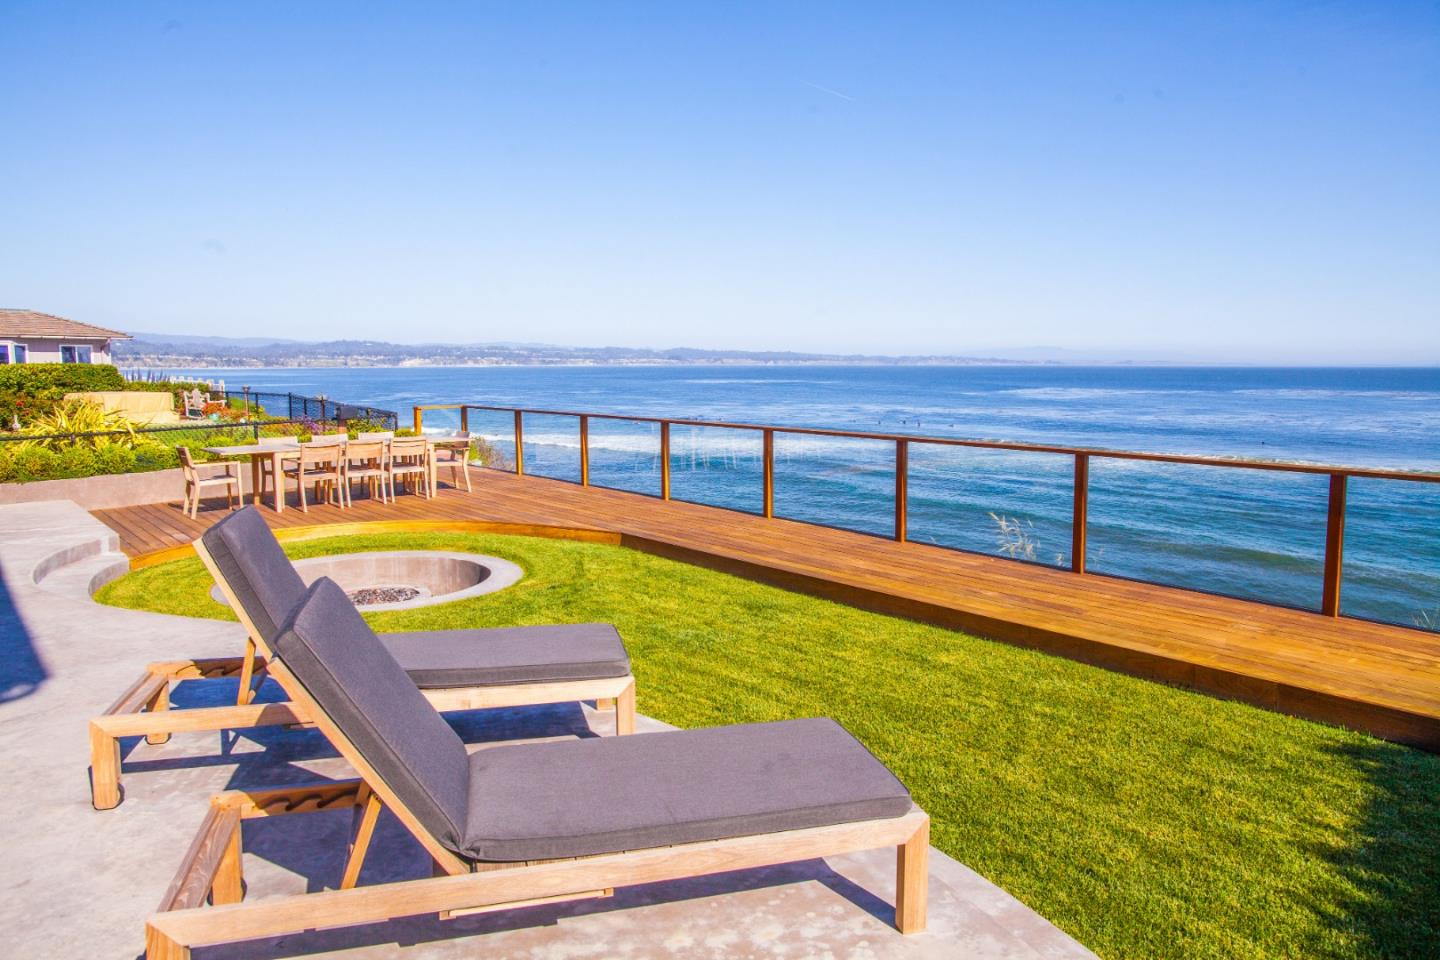 4330 Opal Cliff Dr. is a Matson Britton architectural masterpiece that stands apart as one of the Monterey Bay's most unique and special homes. This retreat is an ode to ultra-luxury and the modern esthetic - a four-bedroom shrine perched atop Opal Cliff's scenic bluffs. The meticulous design took six years to complete and no expense was spared with exterior windows clad in solid bronze, a copper Diamond Spa, rare stone throughout, huge breathtaking pivot doors and a jaw dropping executive office. The expansive glass walls stand as a monument to the relationship between the ocean and shoreline. This palace of glass, grace, and beauty offers panoramic views of three world-class point waves as well as the quaint lights of the expansive Monterey Bay. Make sure to watch the video tour!